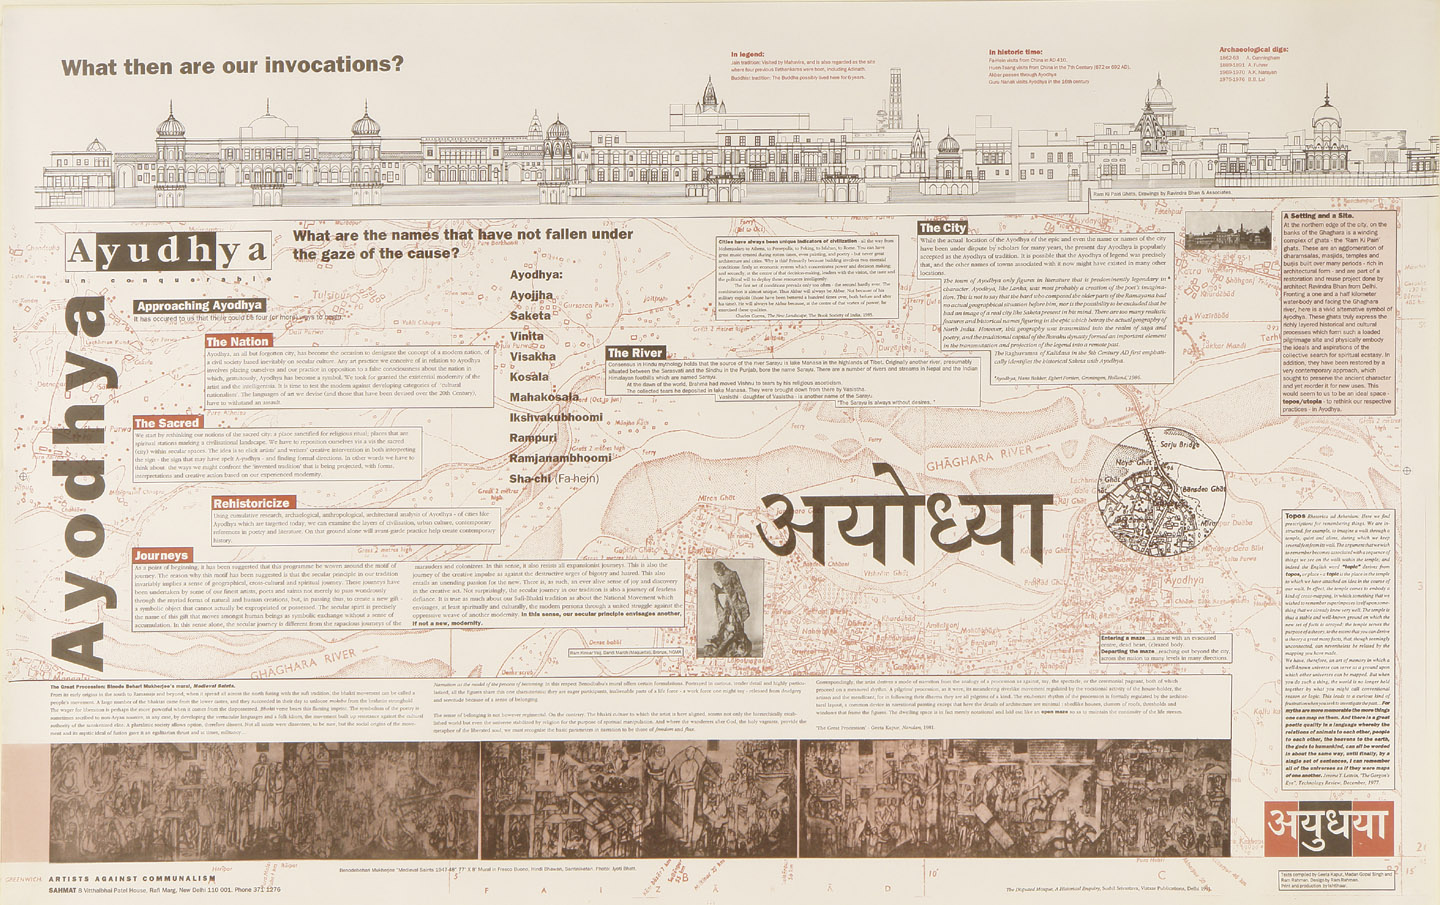 The 1992 poster about the Babri Masjid demolition in Ayodhya, designed by Ram Rahman.